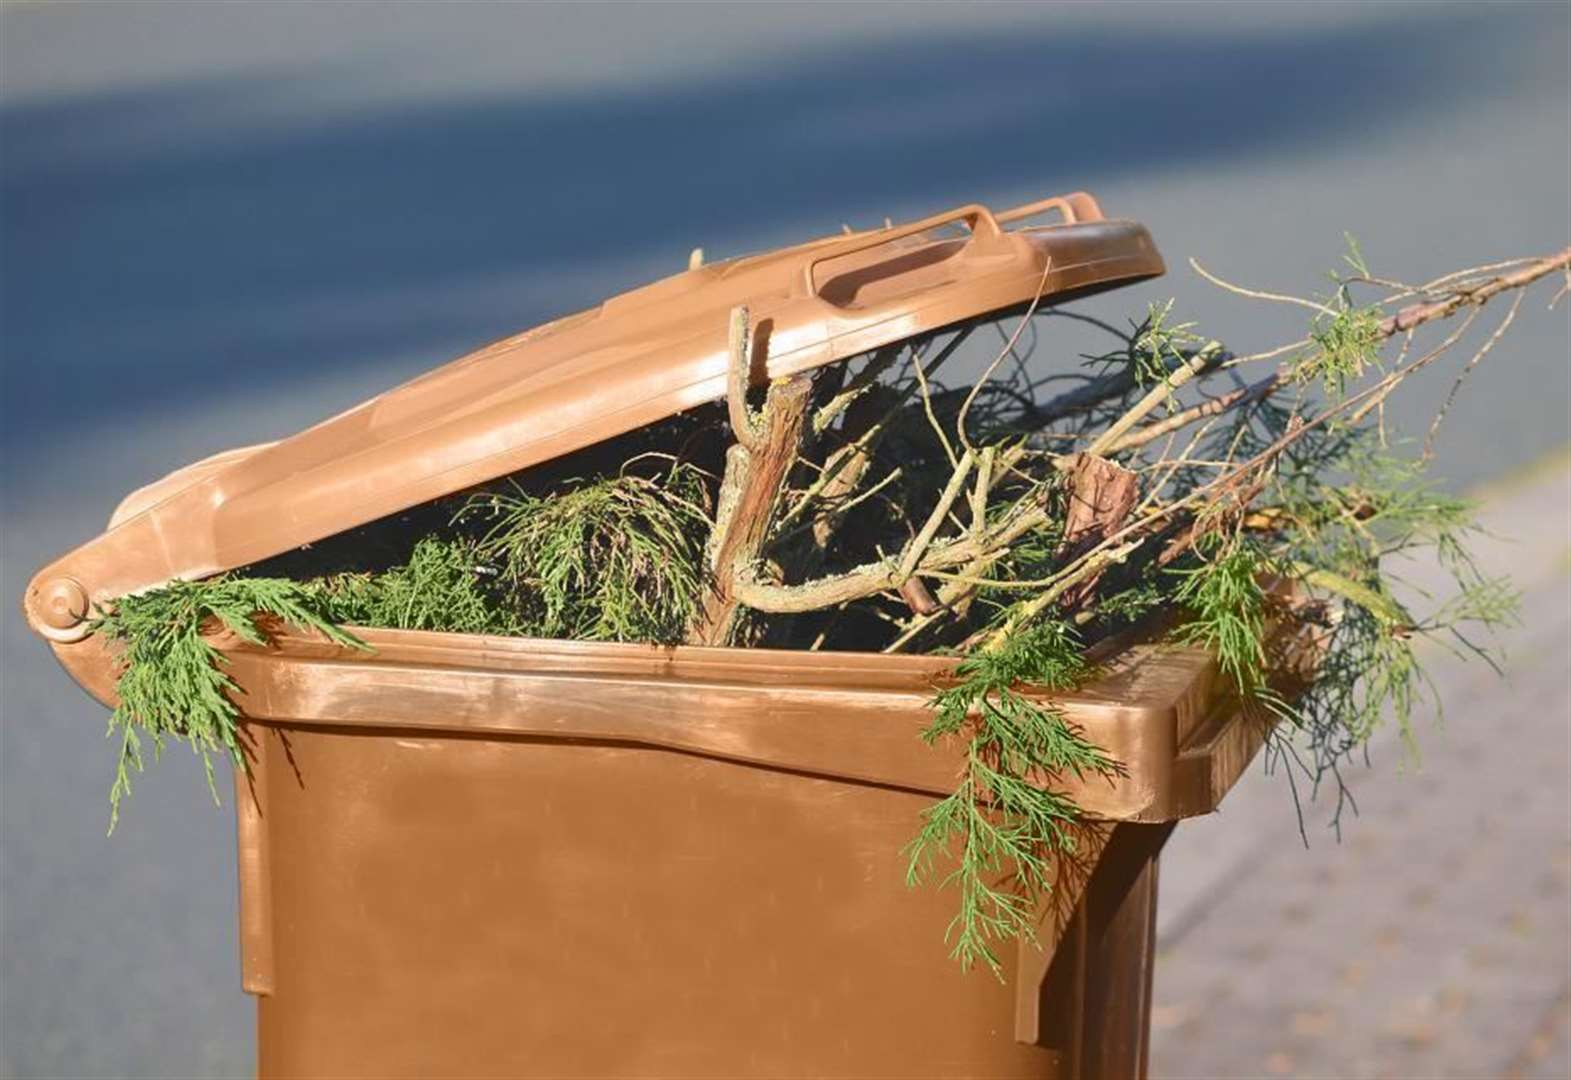 Are you paying the most to get your garden waste collected?